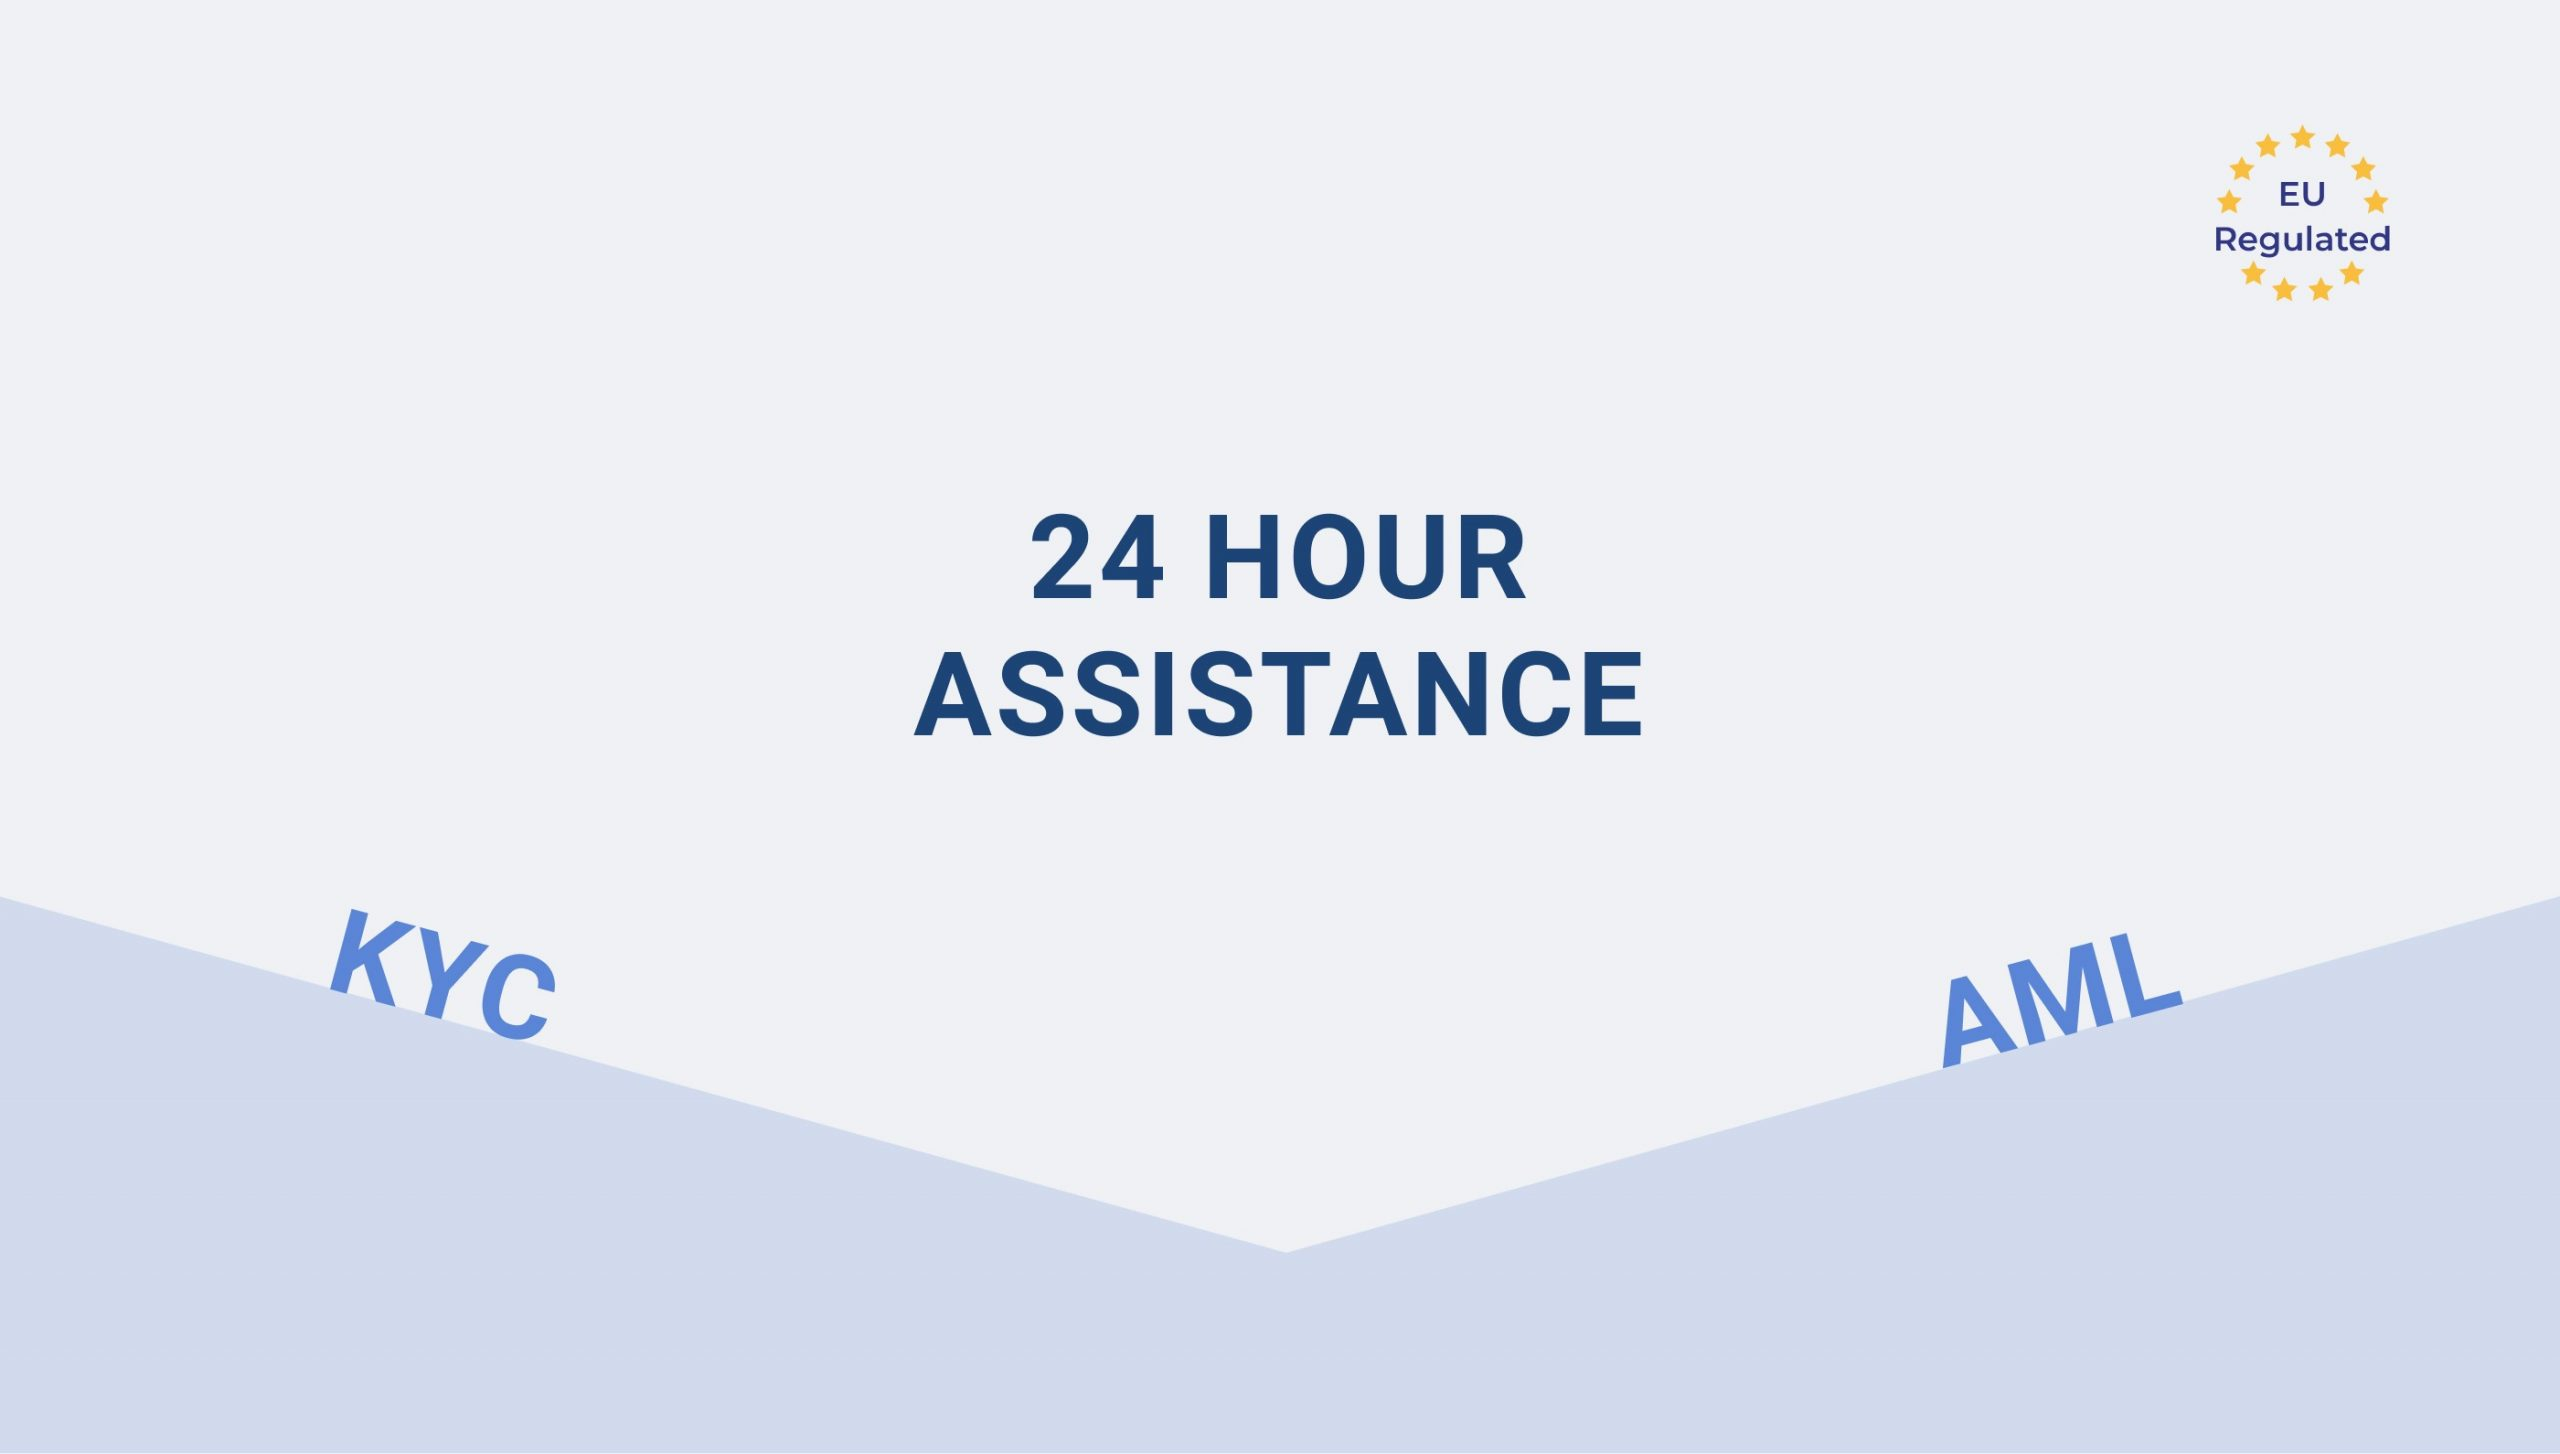 Arbsimart provides 24hr assistance a day and requires KYC and AML